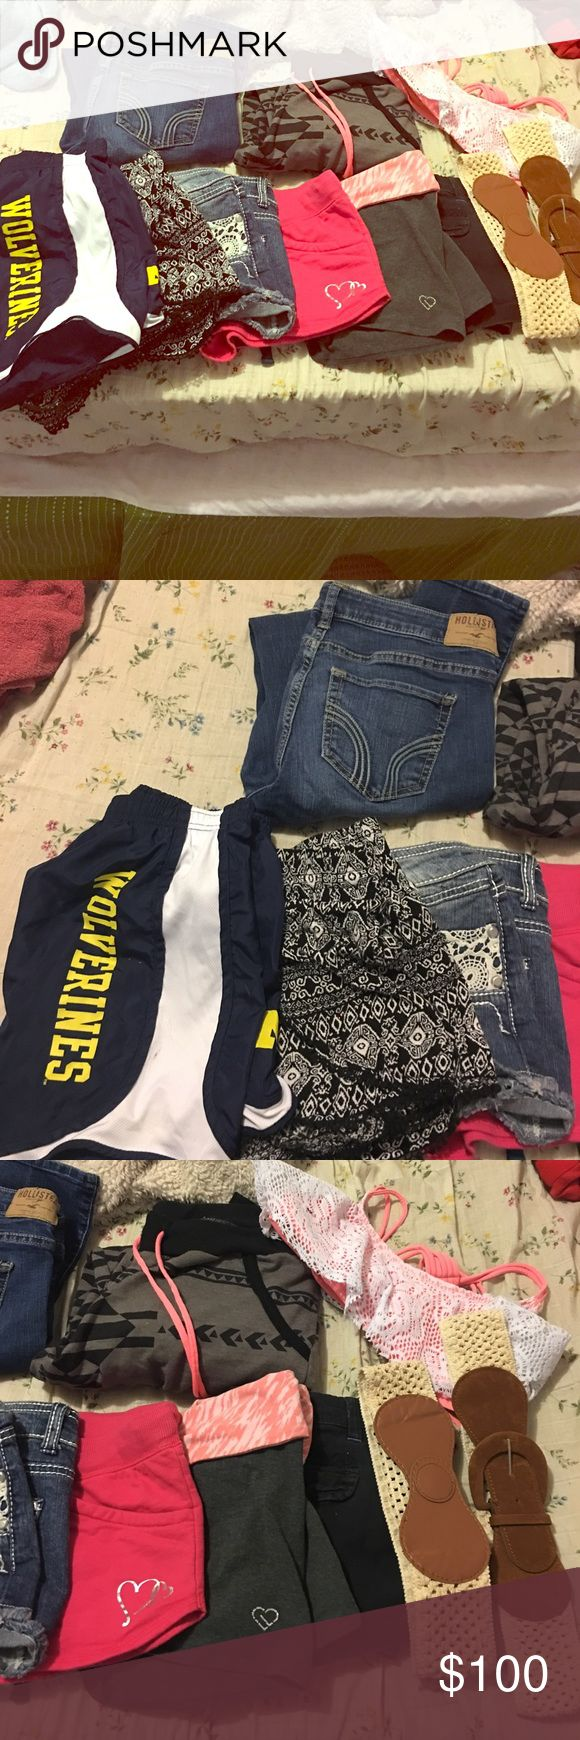 Hollister and other brand name lot Hollister jeans size 5 but fit like a 3. Skinny jeans. Joggers, bathing suit top and black/white shorts are all size medium. Wolverine shorts, pink heart shorts and aero shorts all size small. No boundaries Jean shorts say size 9 fit like a 3. Aero blue shorts says size 7/8 fit like a 3. Willing to trade for another lot of clothing. Willing to separate. Willing to trade for brands: Hollister, diamond supply, vs pink, miss me, rock revivals, miss me and rue…